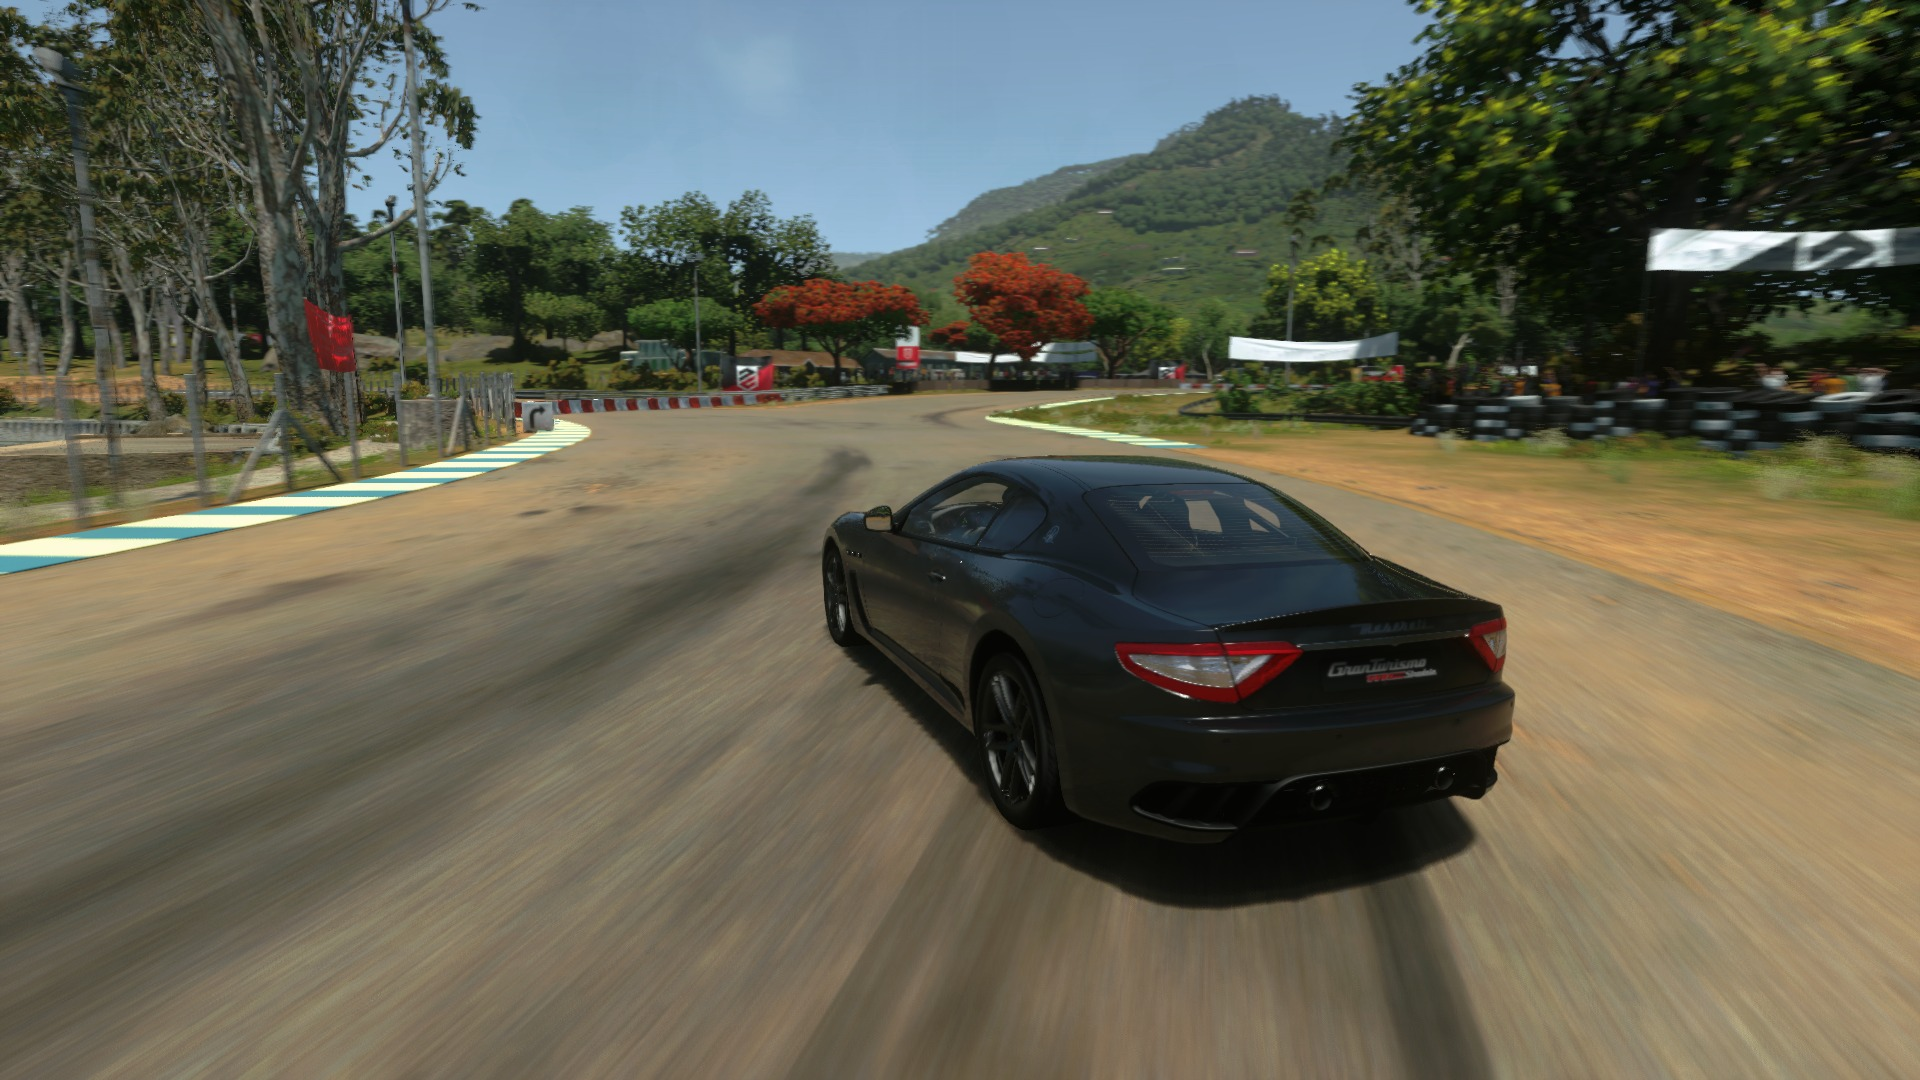 Gorgeous realistic looking driveclub beta ps4 1080p screenshots leaked